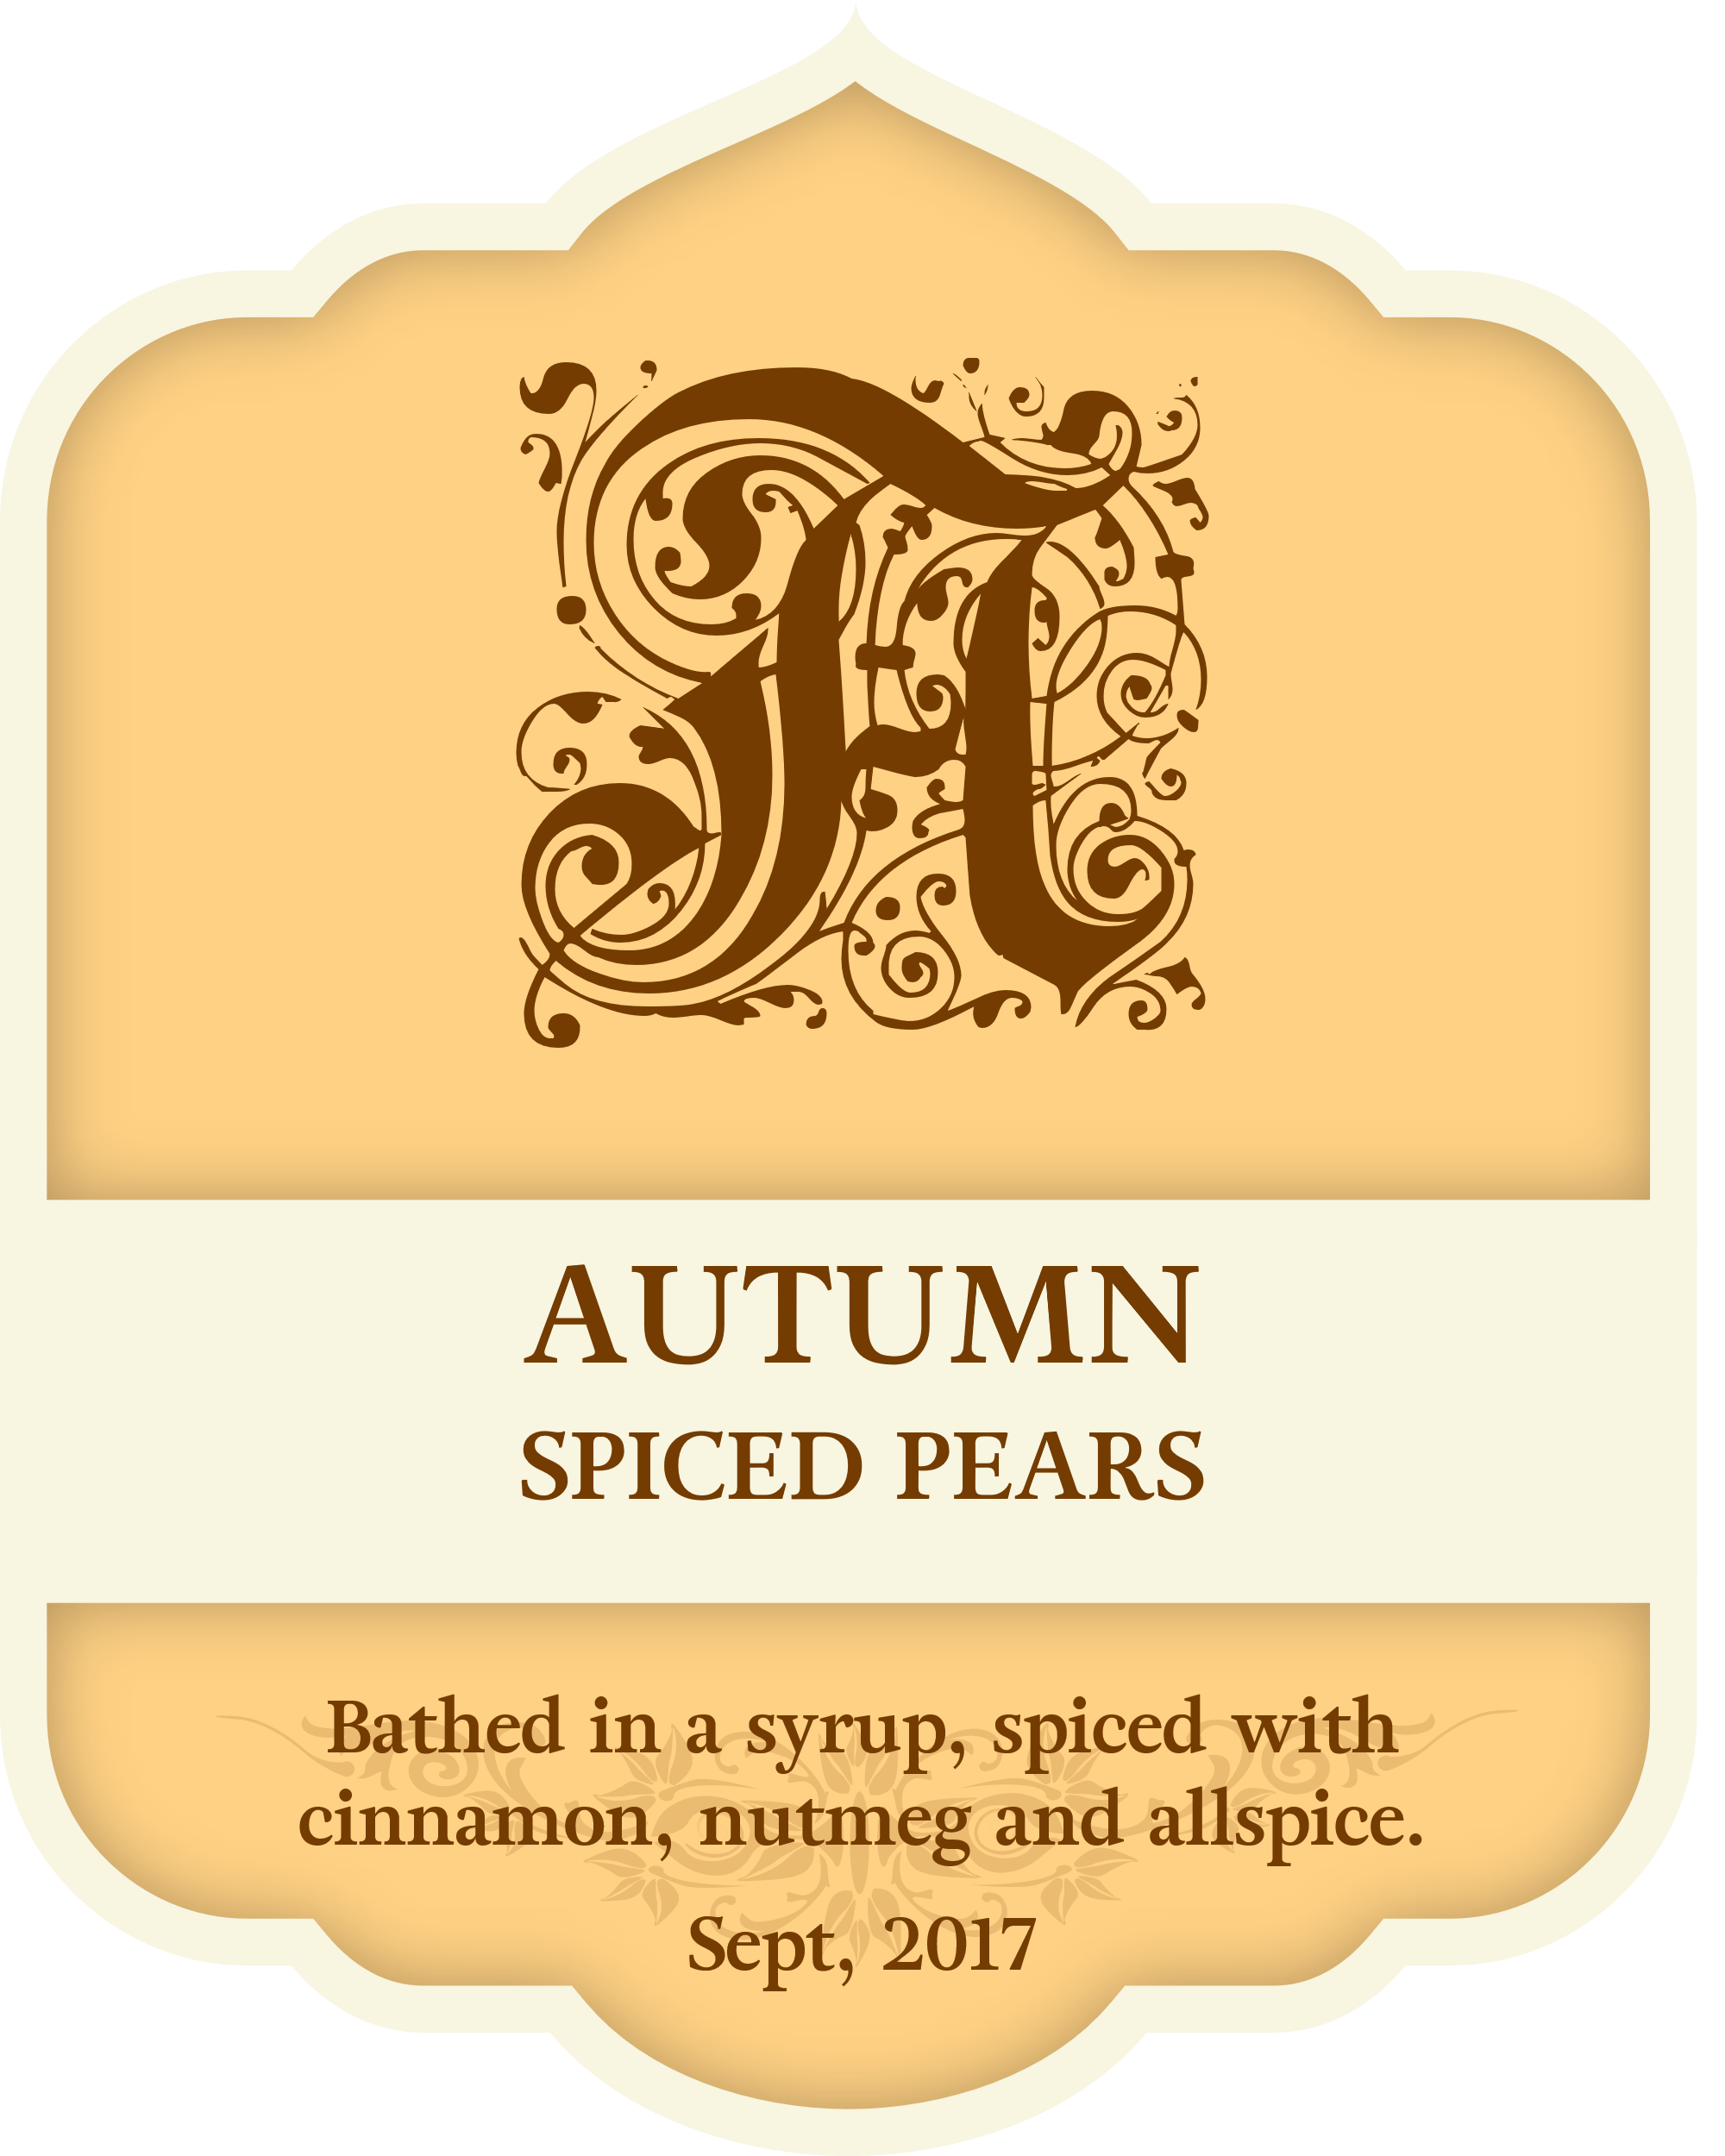 Autumn Spiced Pears 00001